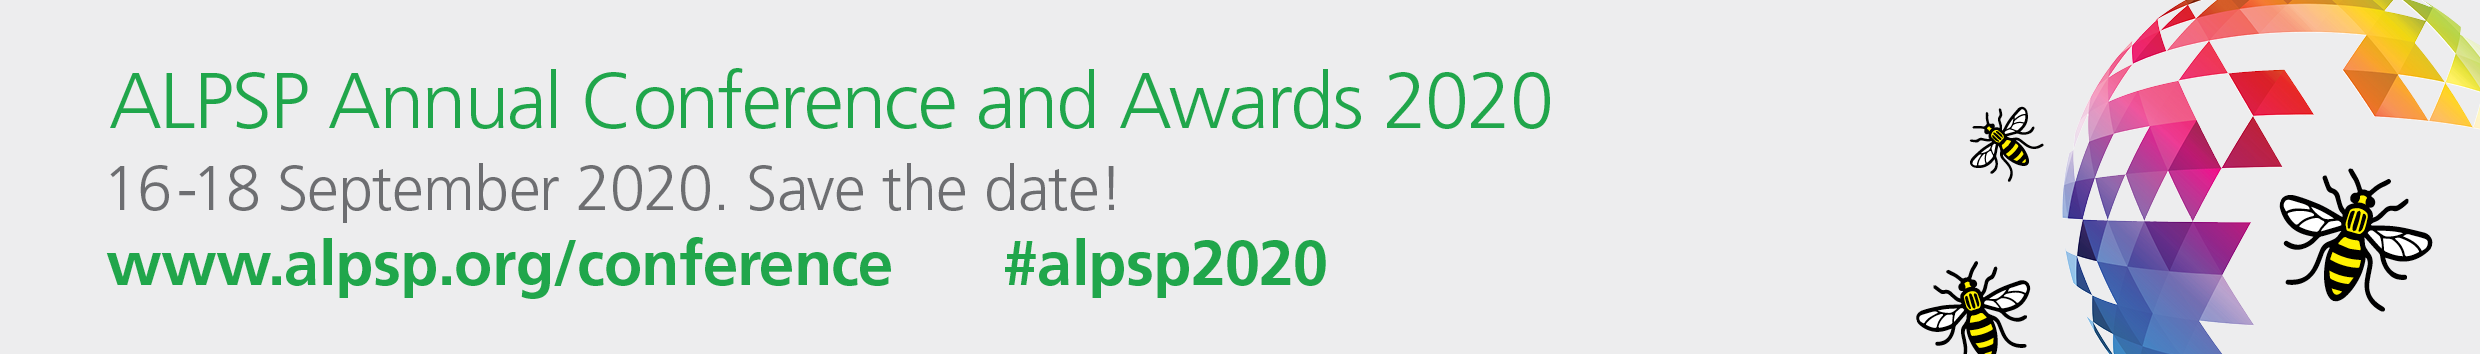 ALPSP ConfAwards2020 SaveDate Email Sep19